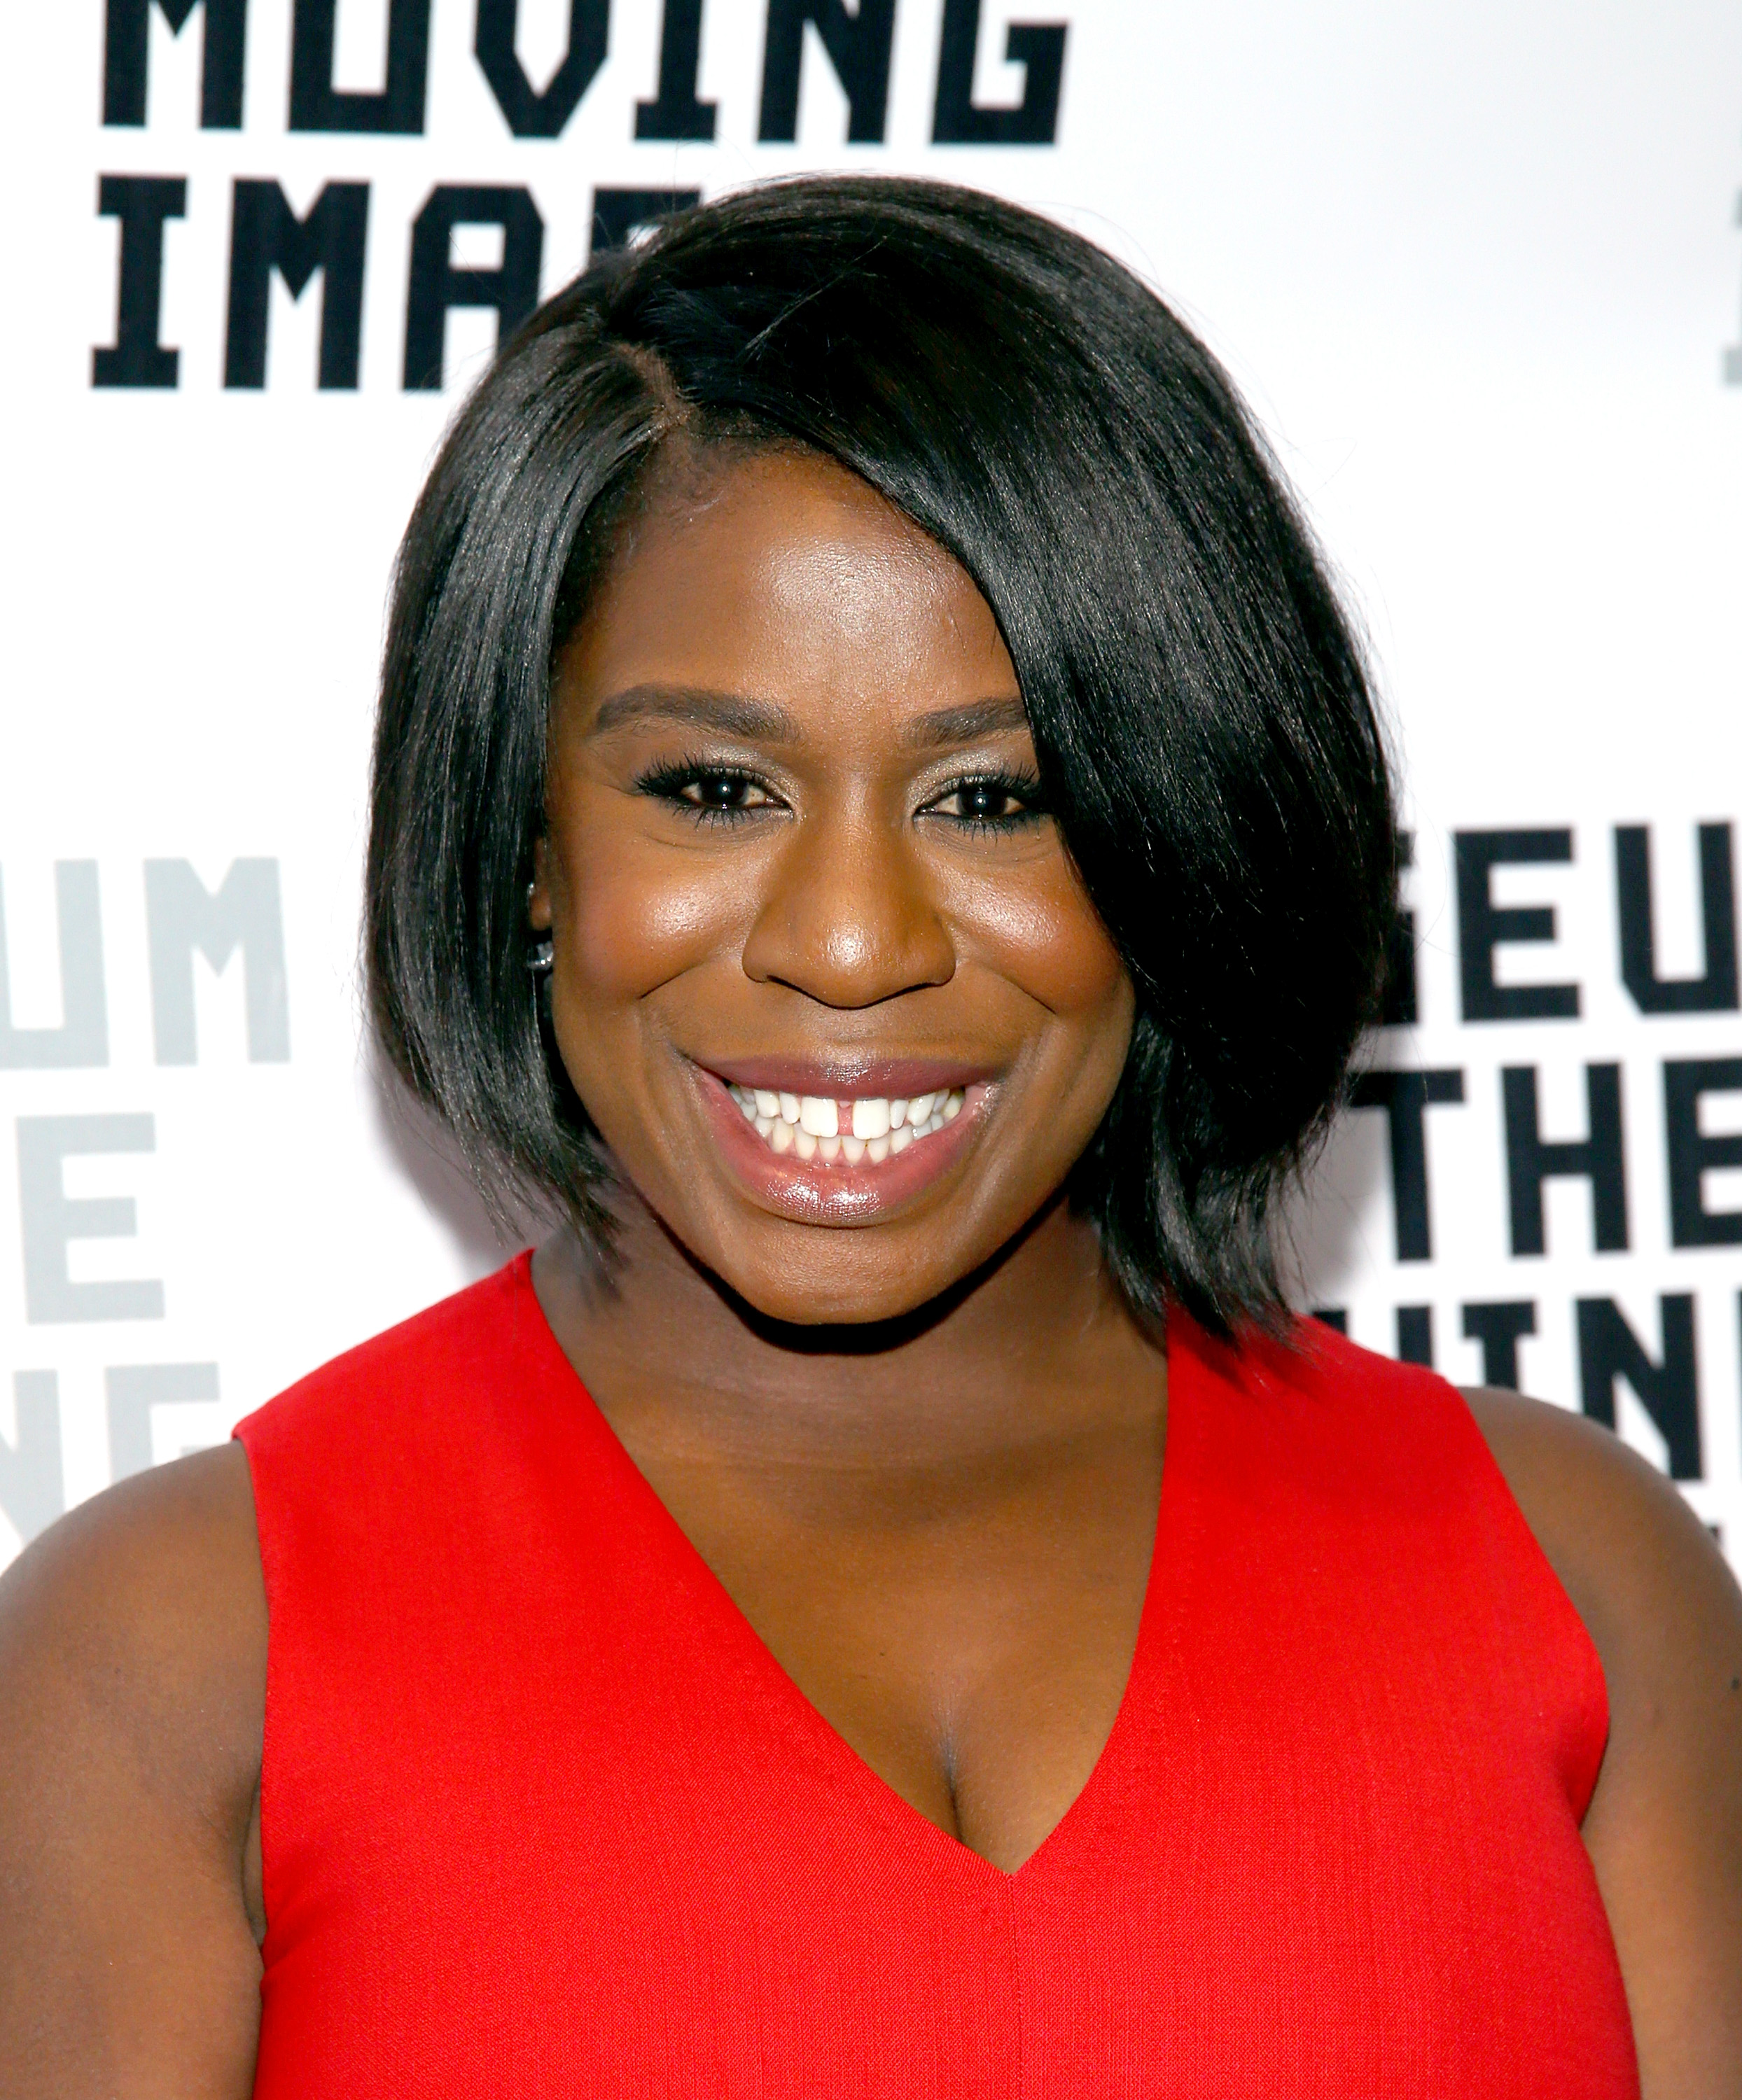 Uzo Aduba's favorite book is so awesome she's on her third read!